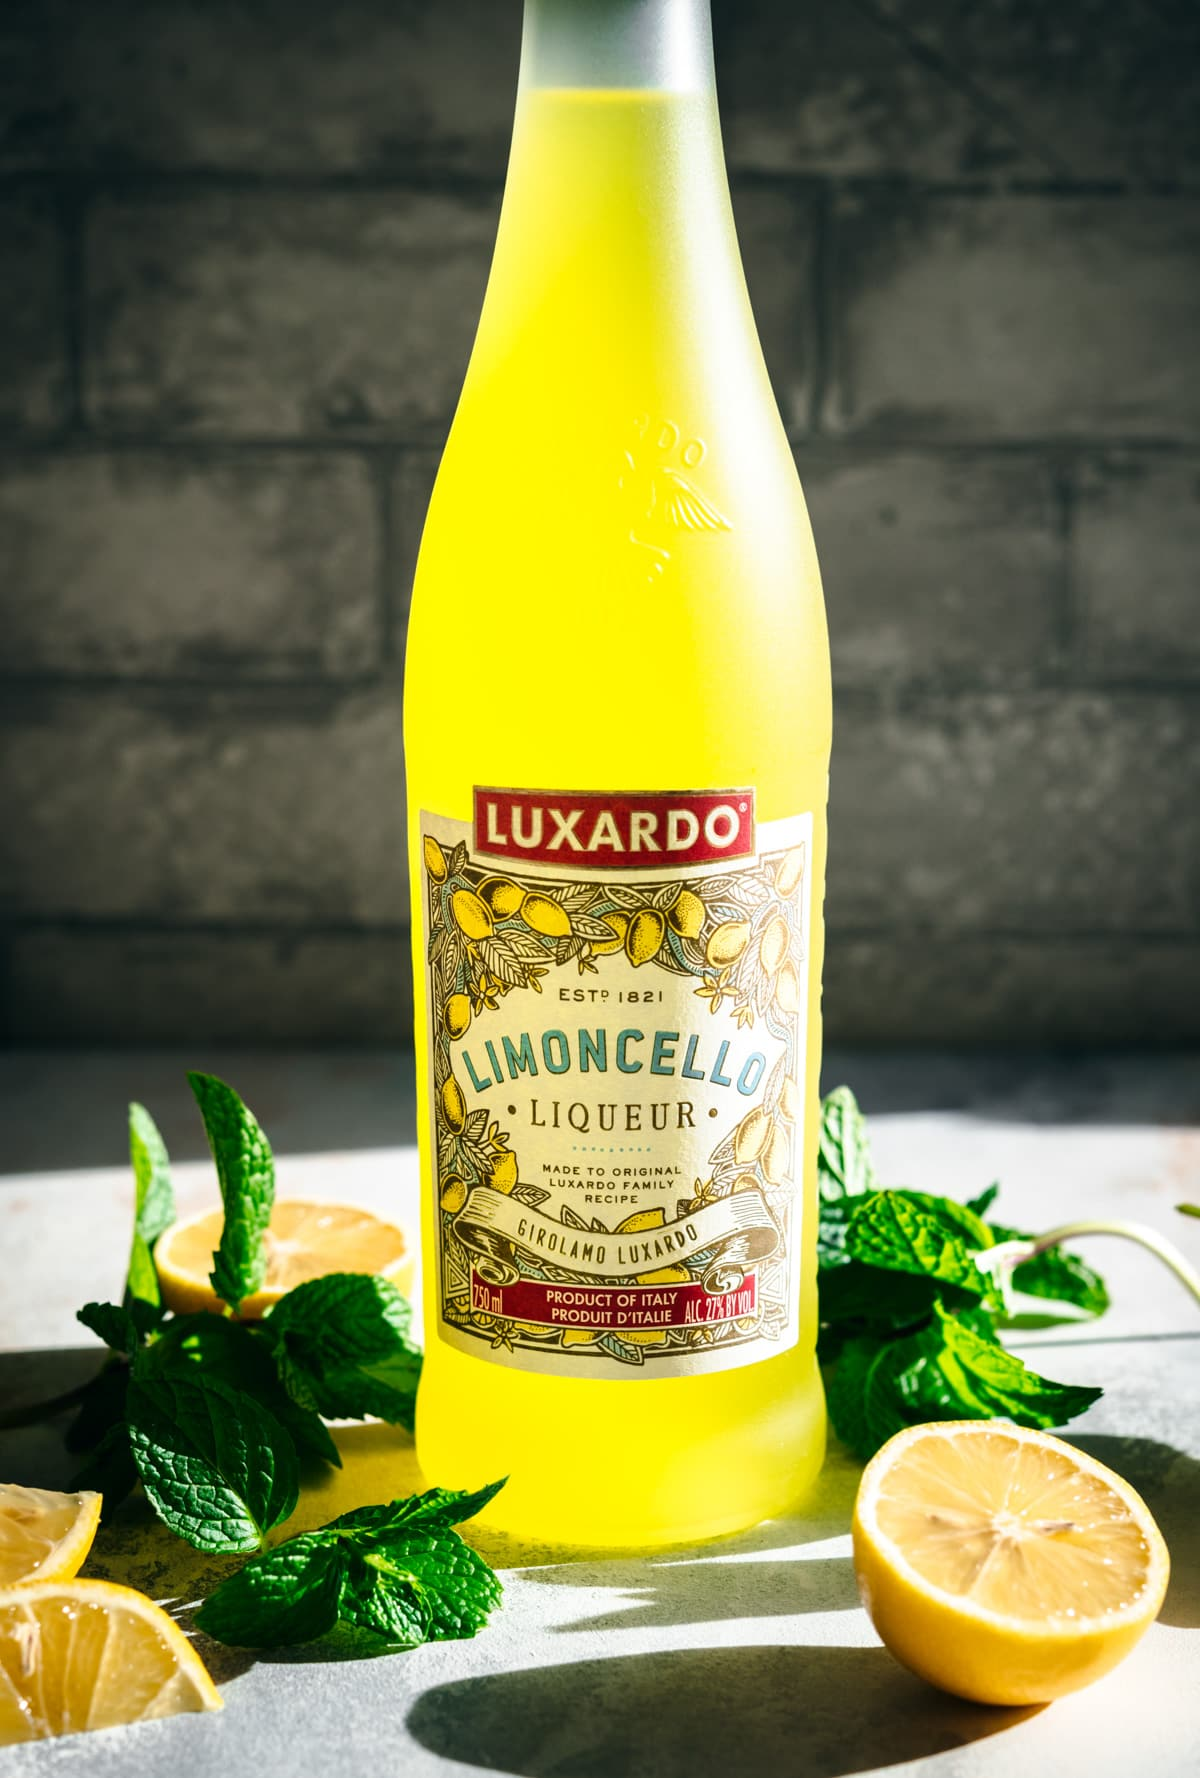 close up view of bottle of limoncello.